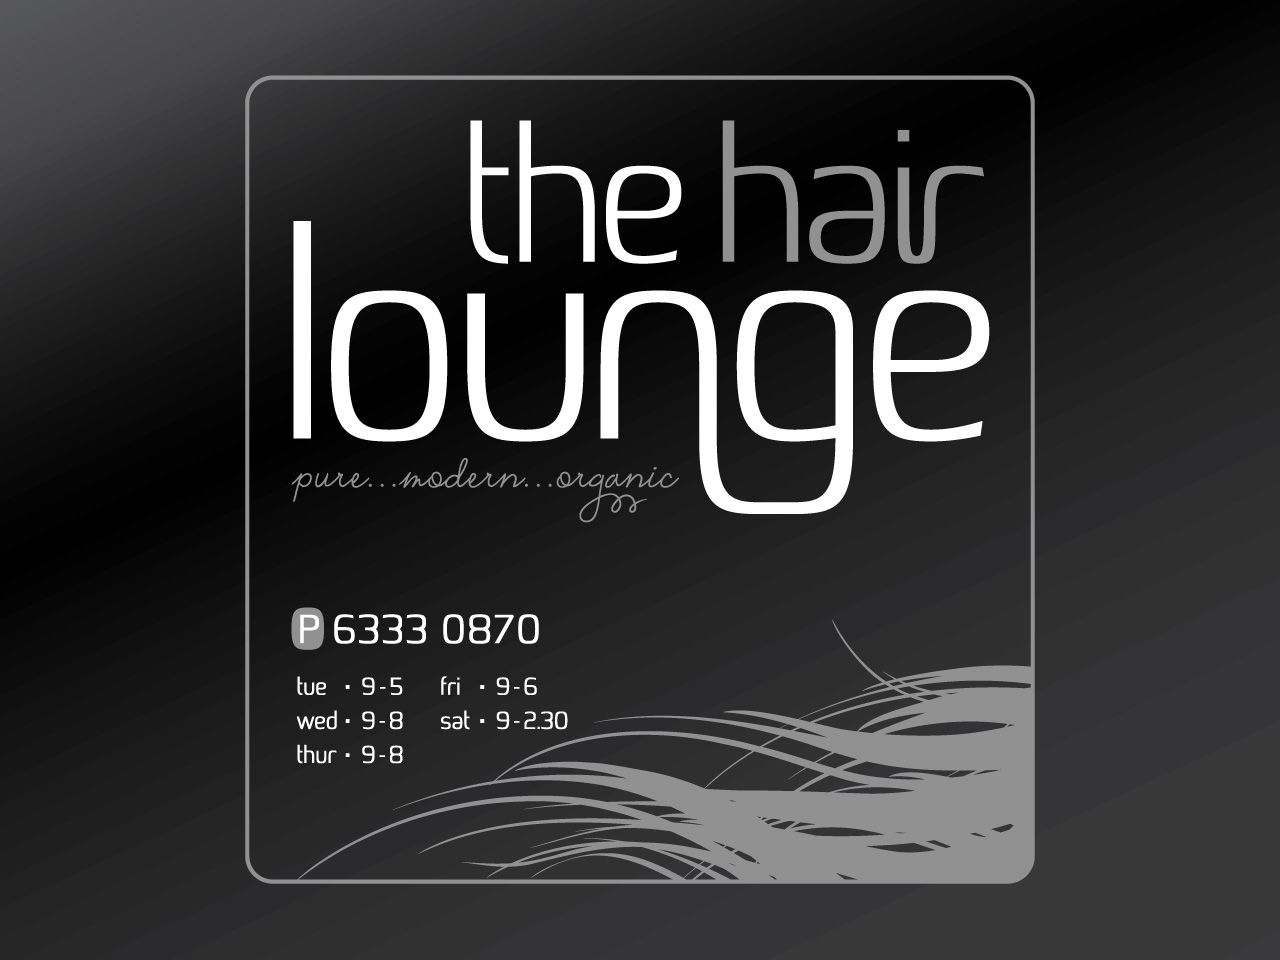 THE HAIR LOUNGE - Branding, signage and business collaterals.